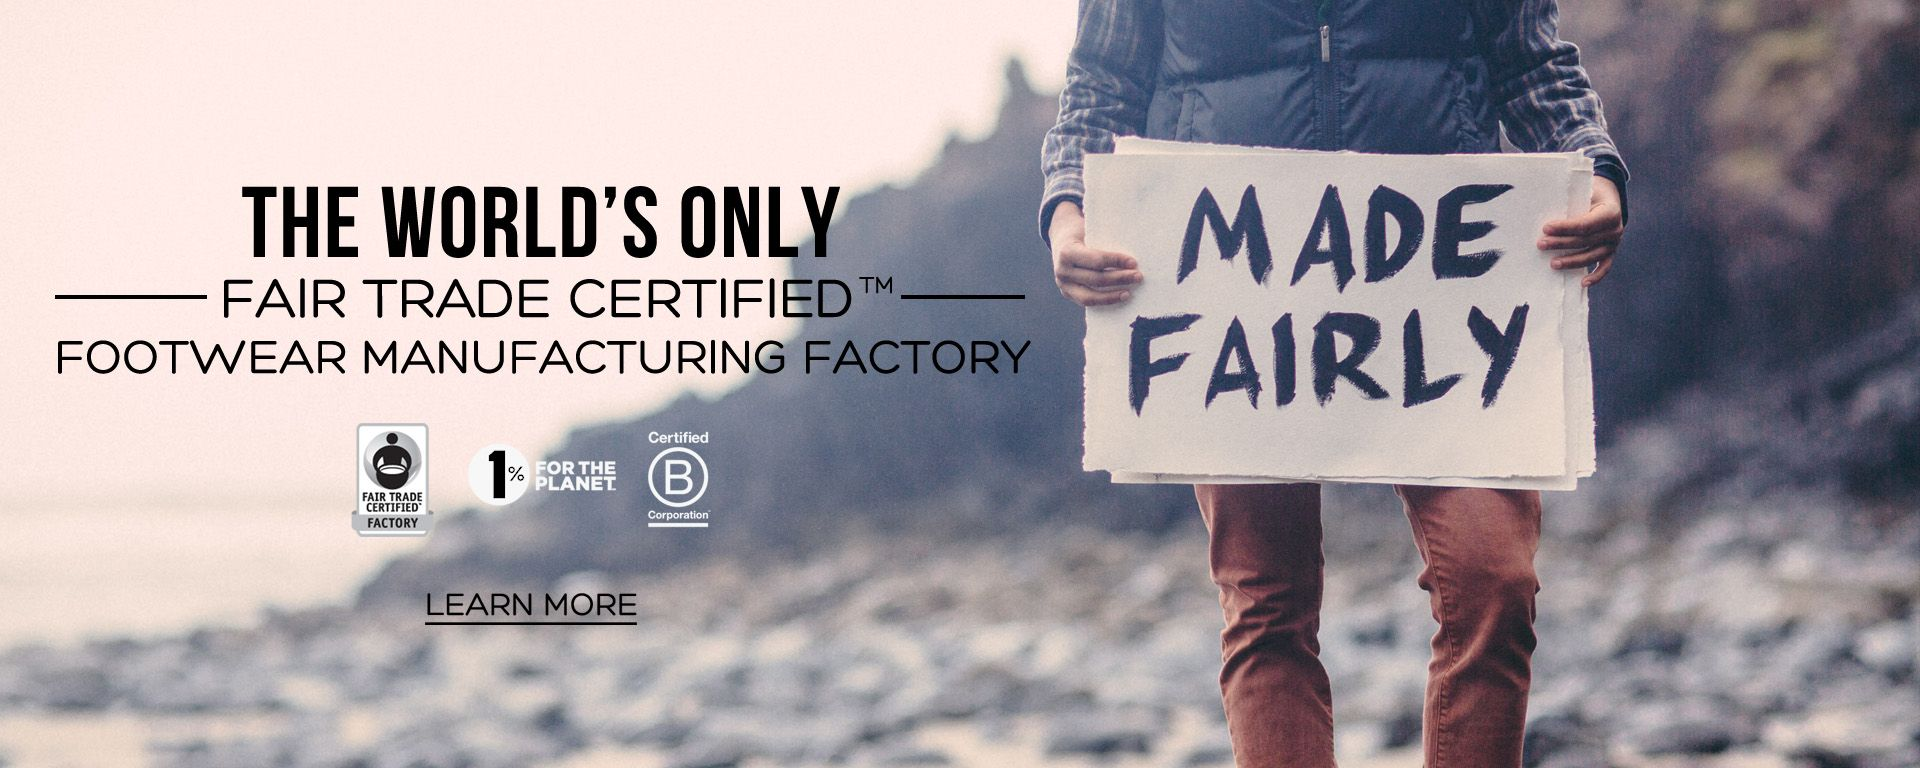 fair trade certified sewing